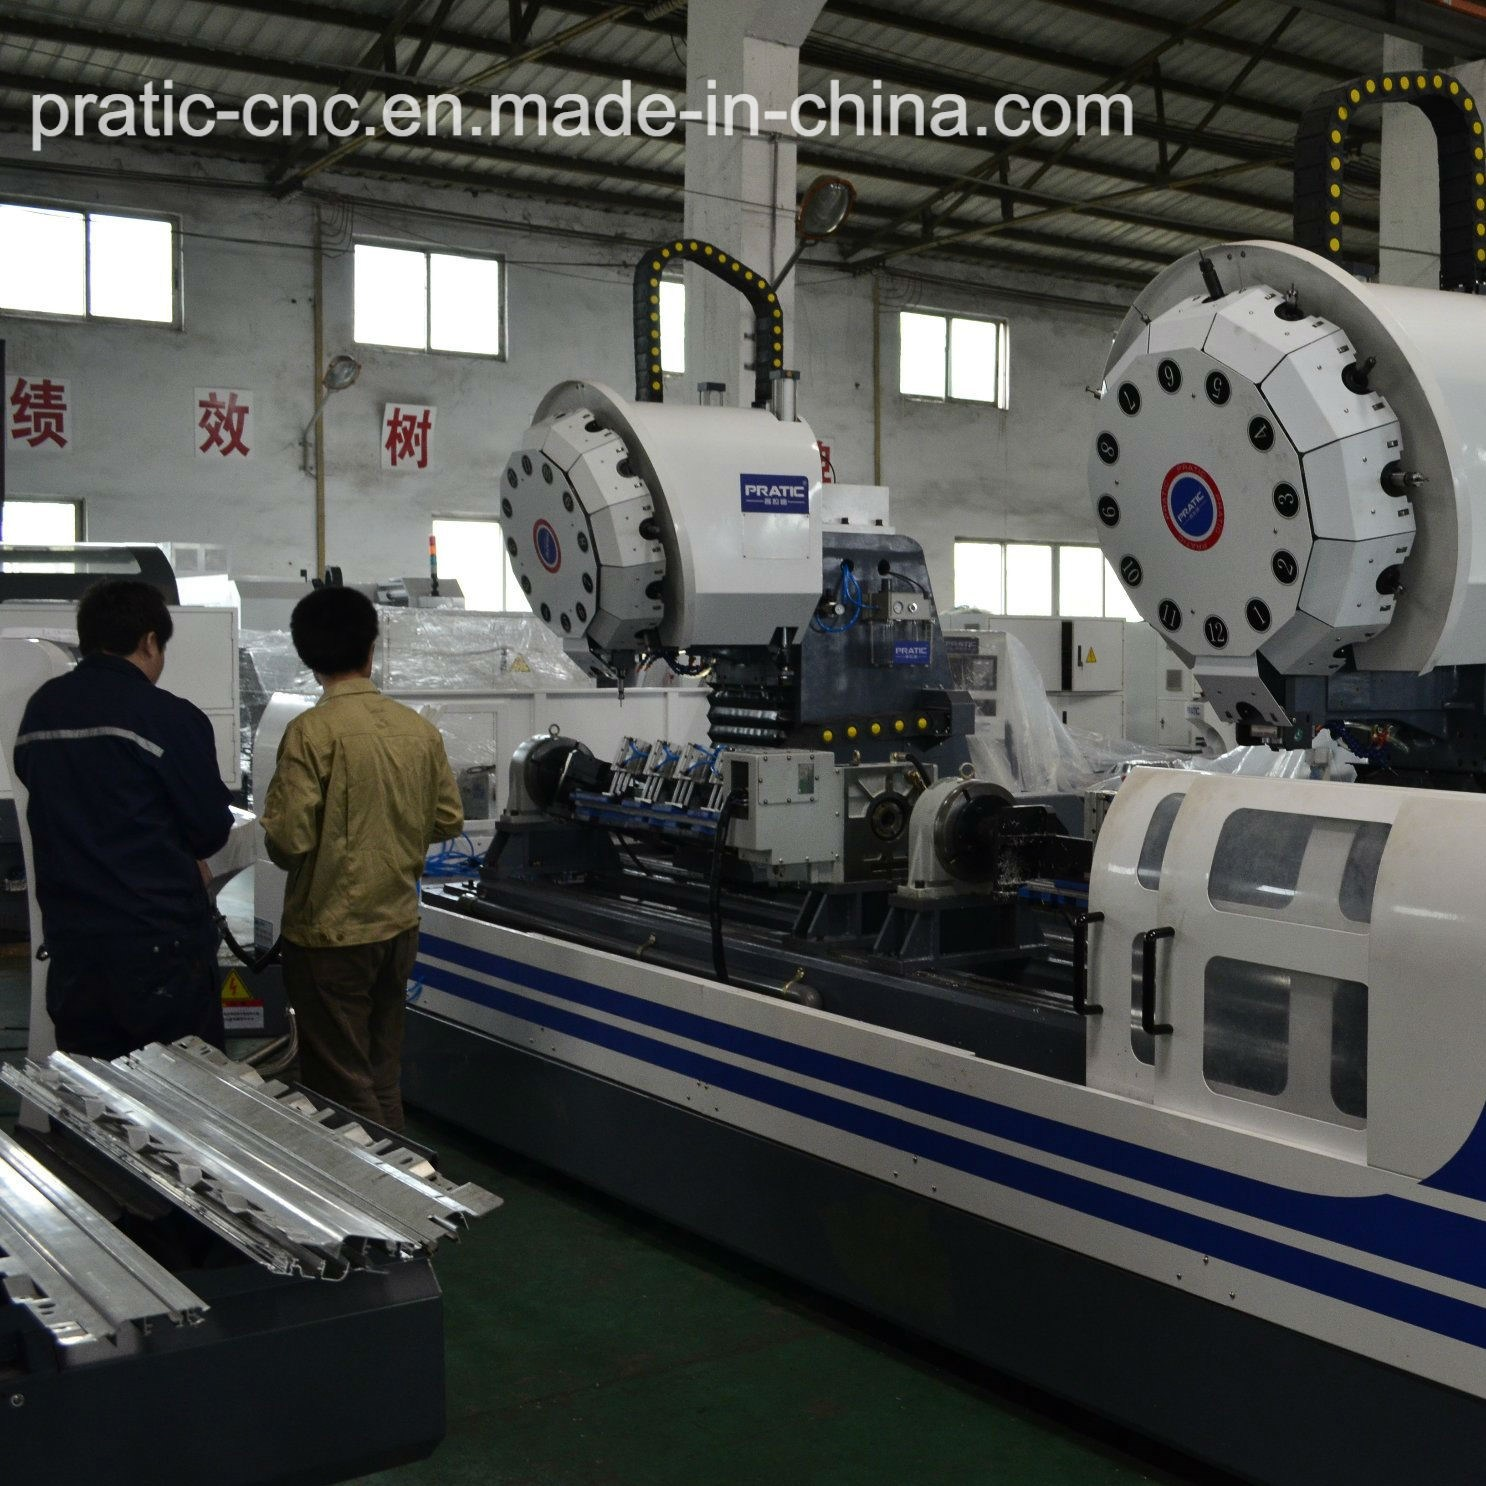 CNC 3 Axis Turret Tool Magazine Milling Machine -Pratic Pz Series